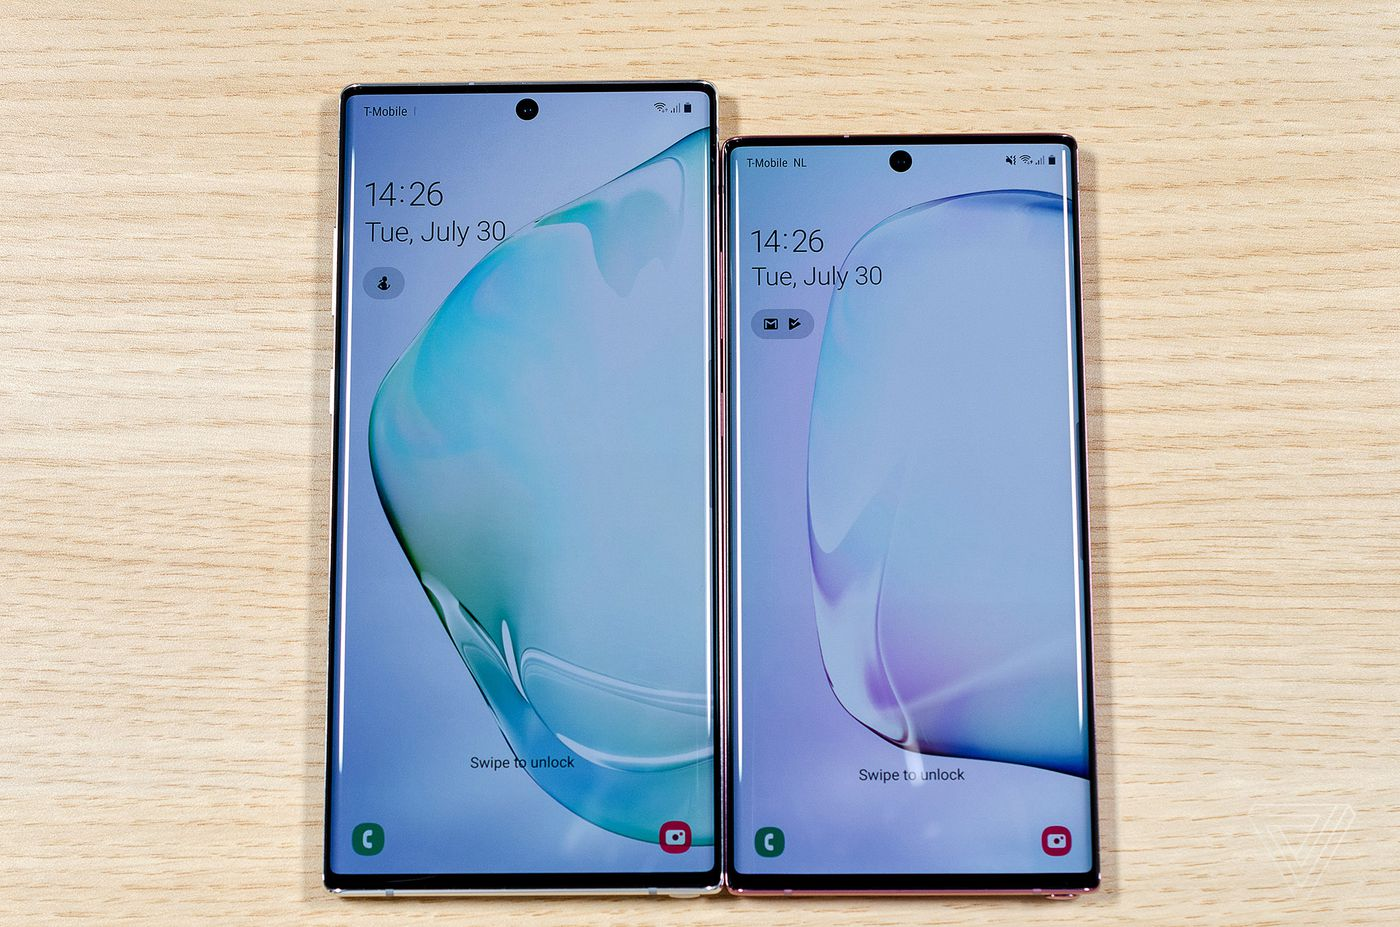 Samsung Galaxy Note 10 Two Sizes New S Pen And Dex On